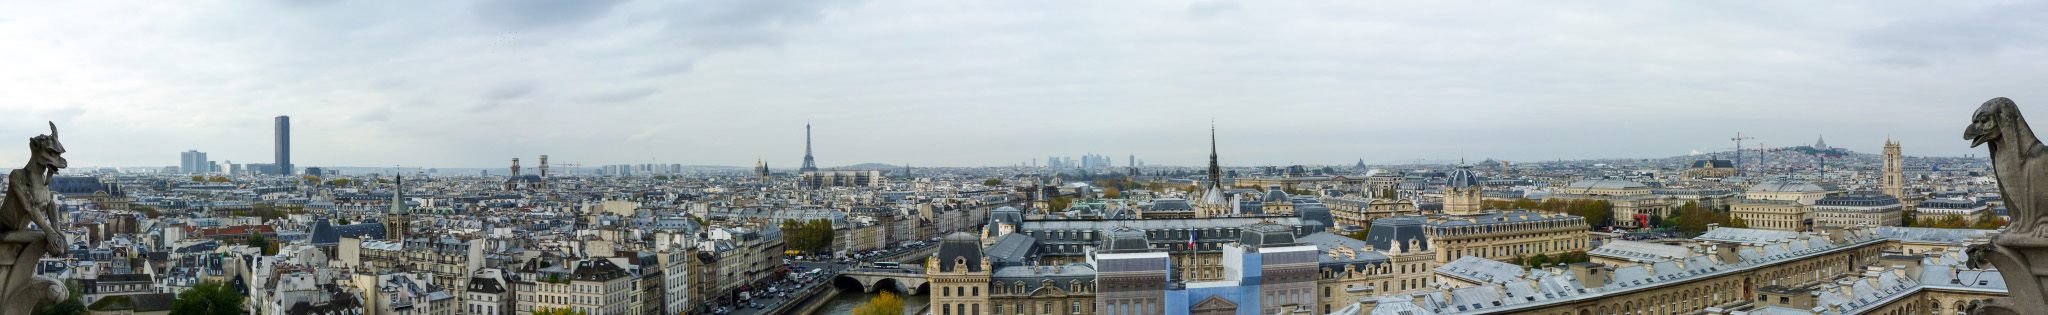 Panorama vom Notre Dame in Paris